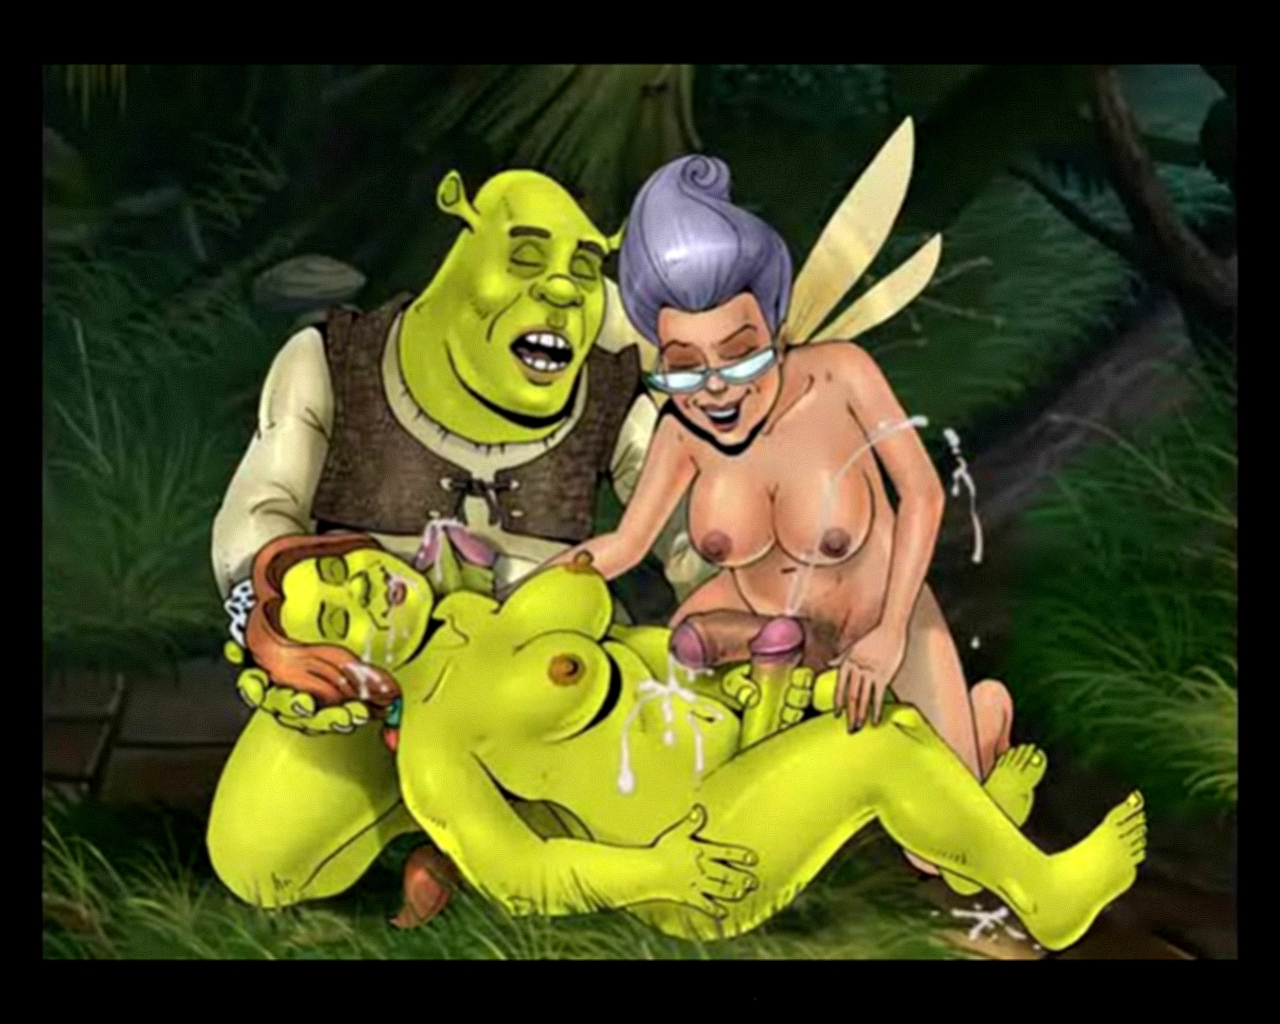 Fiona porn ogress erotic girlfriends